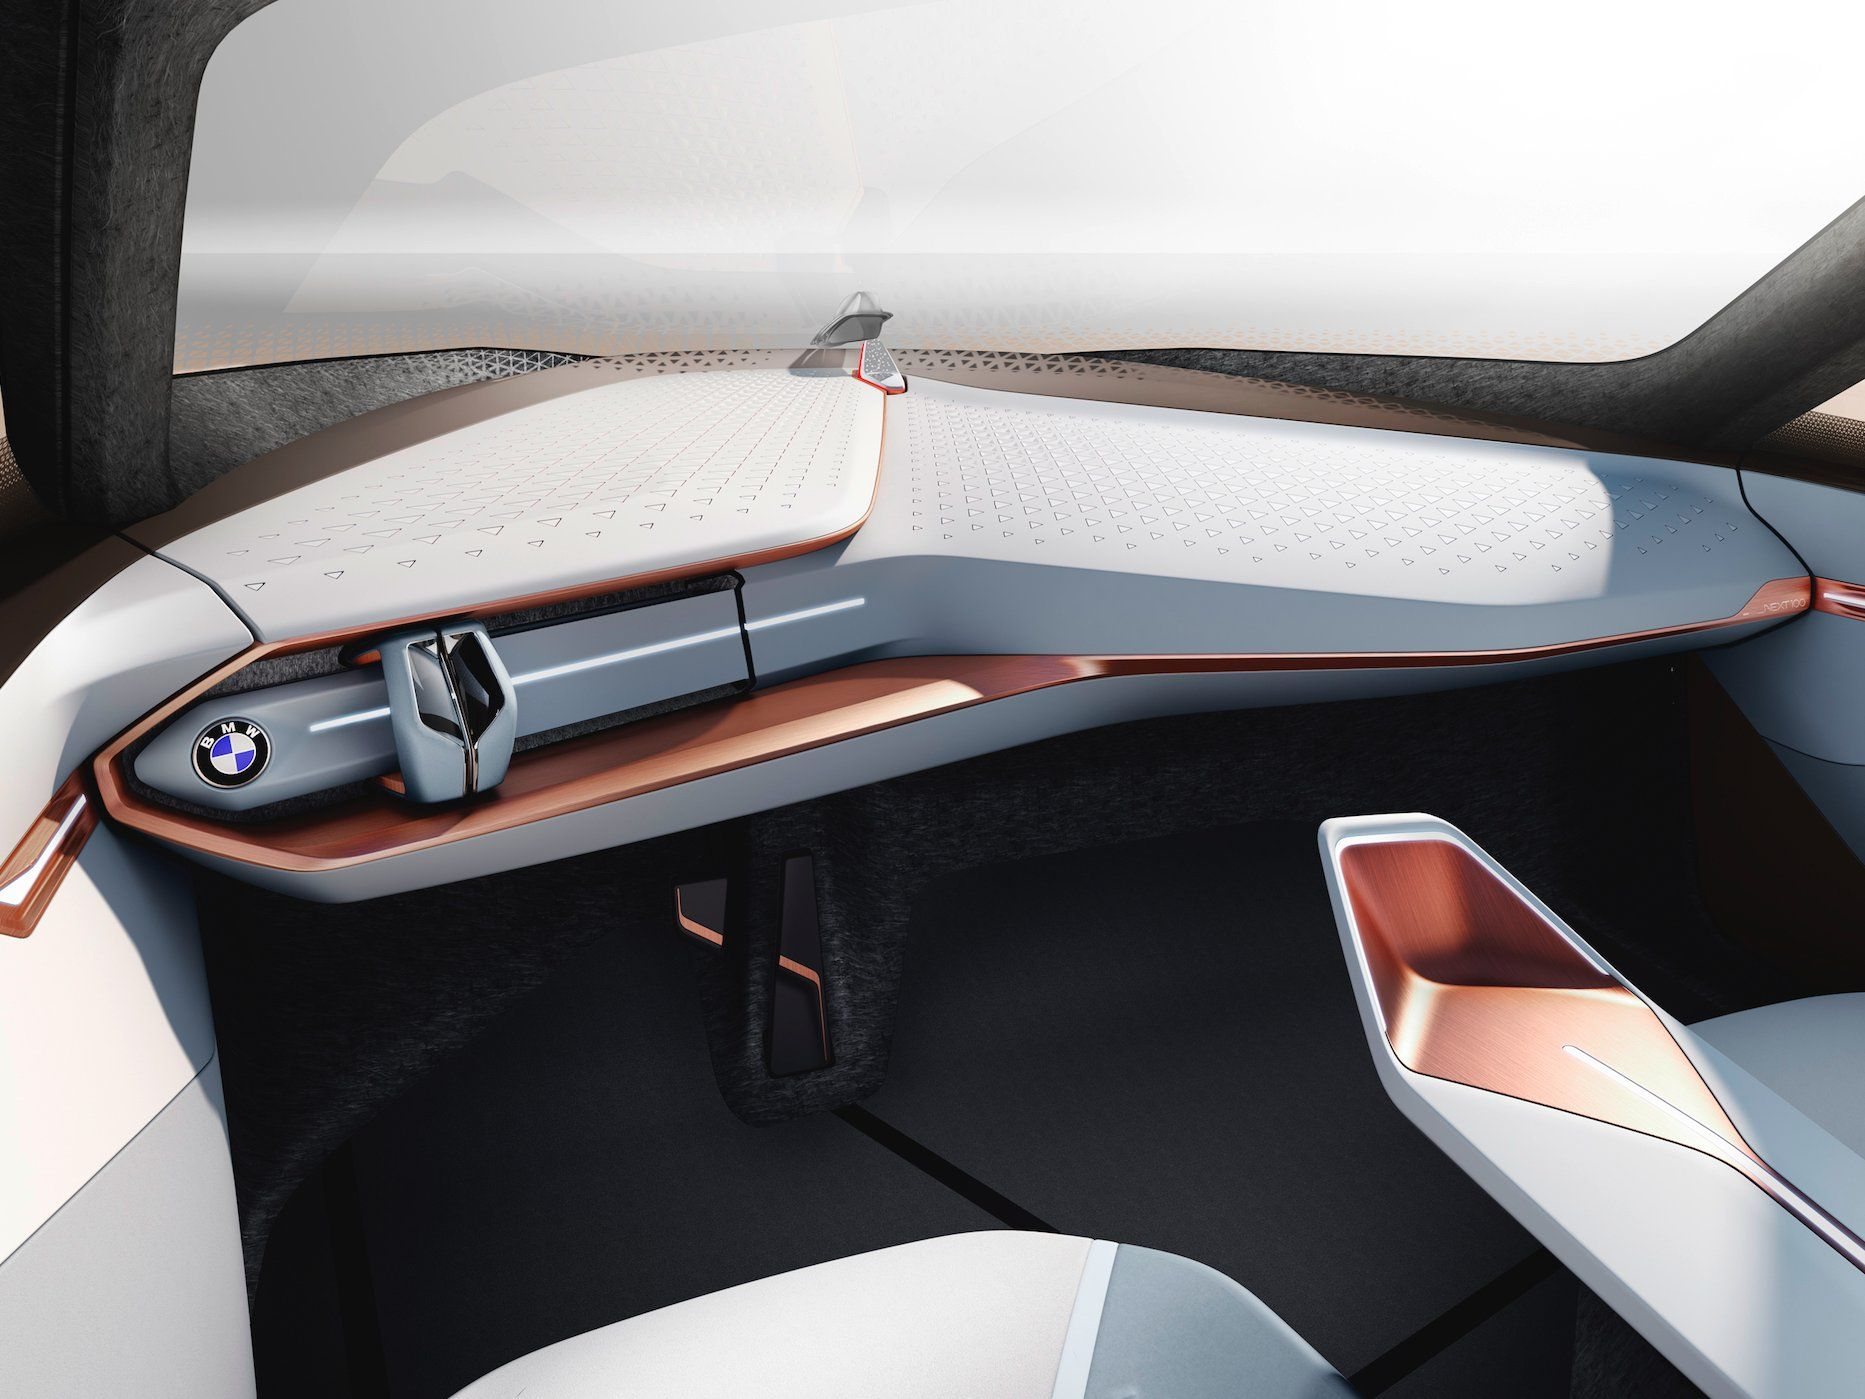 bmw just unveiled its mind blowing vision for cars 100 years in the future bmw and cars. Black Bedroom Furniture Sets. Home Design Ideas